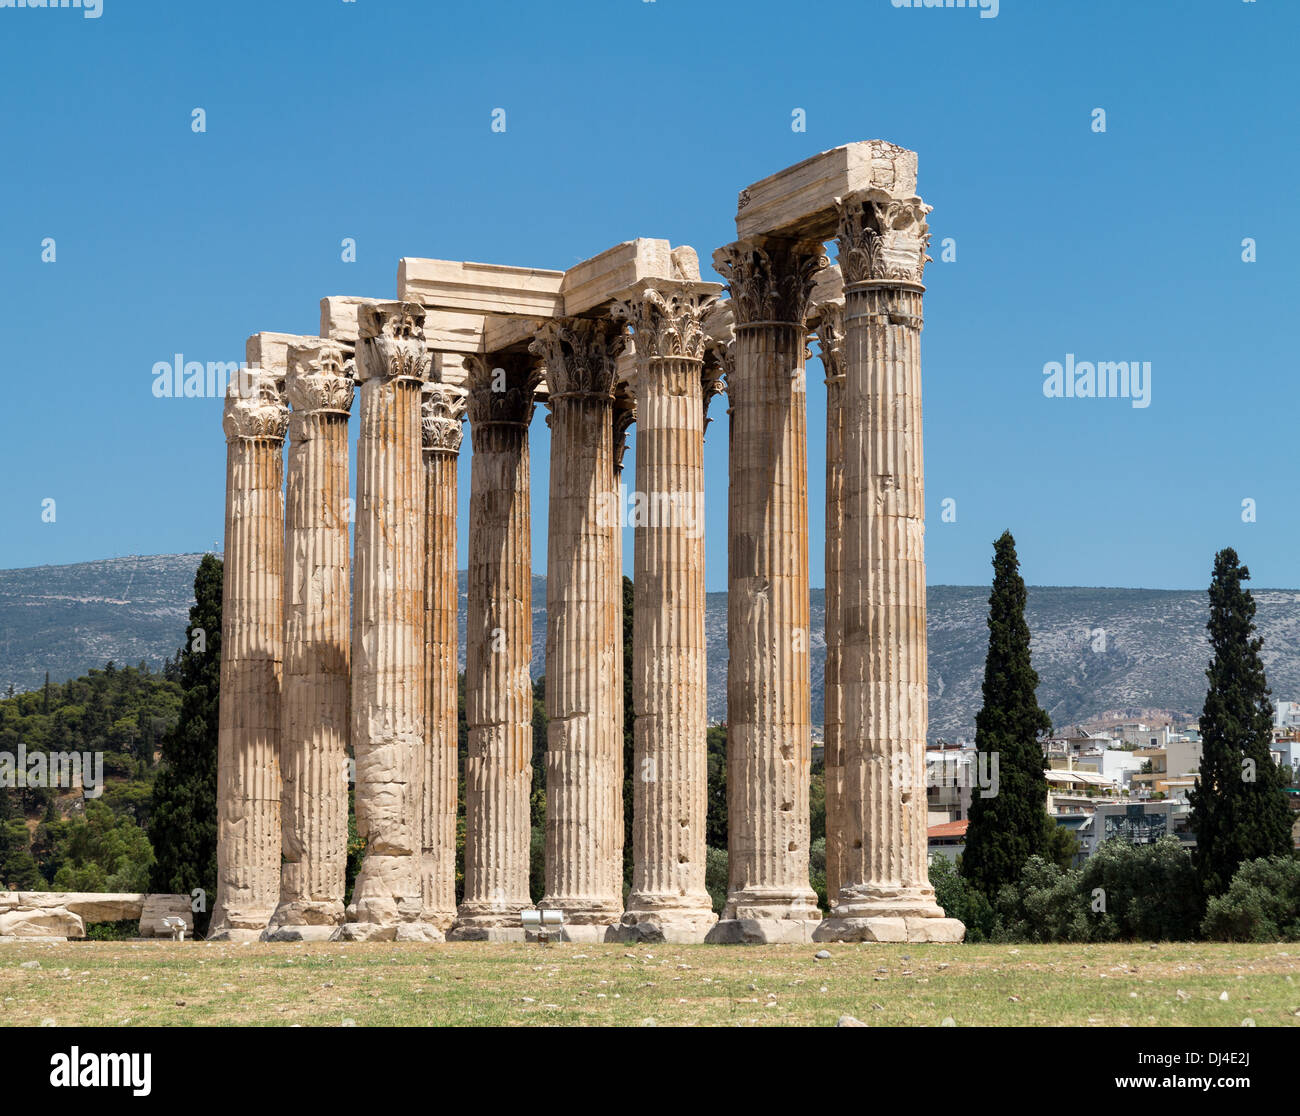 The Ancient Greece Temple of Olympian Zeus / Olympieion, Athens, Greece Stock Photo